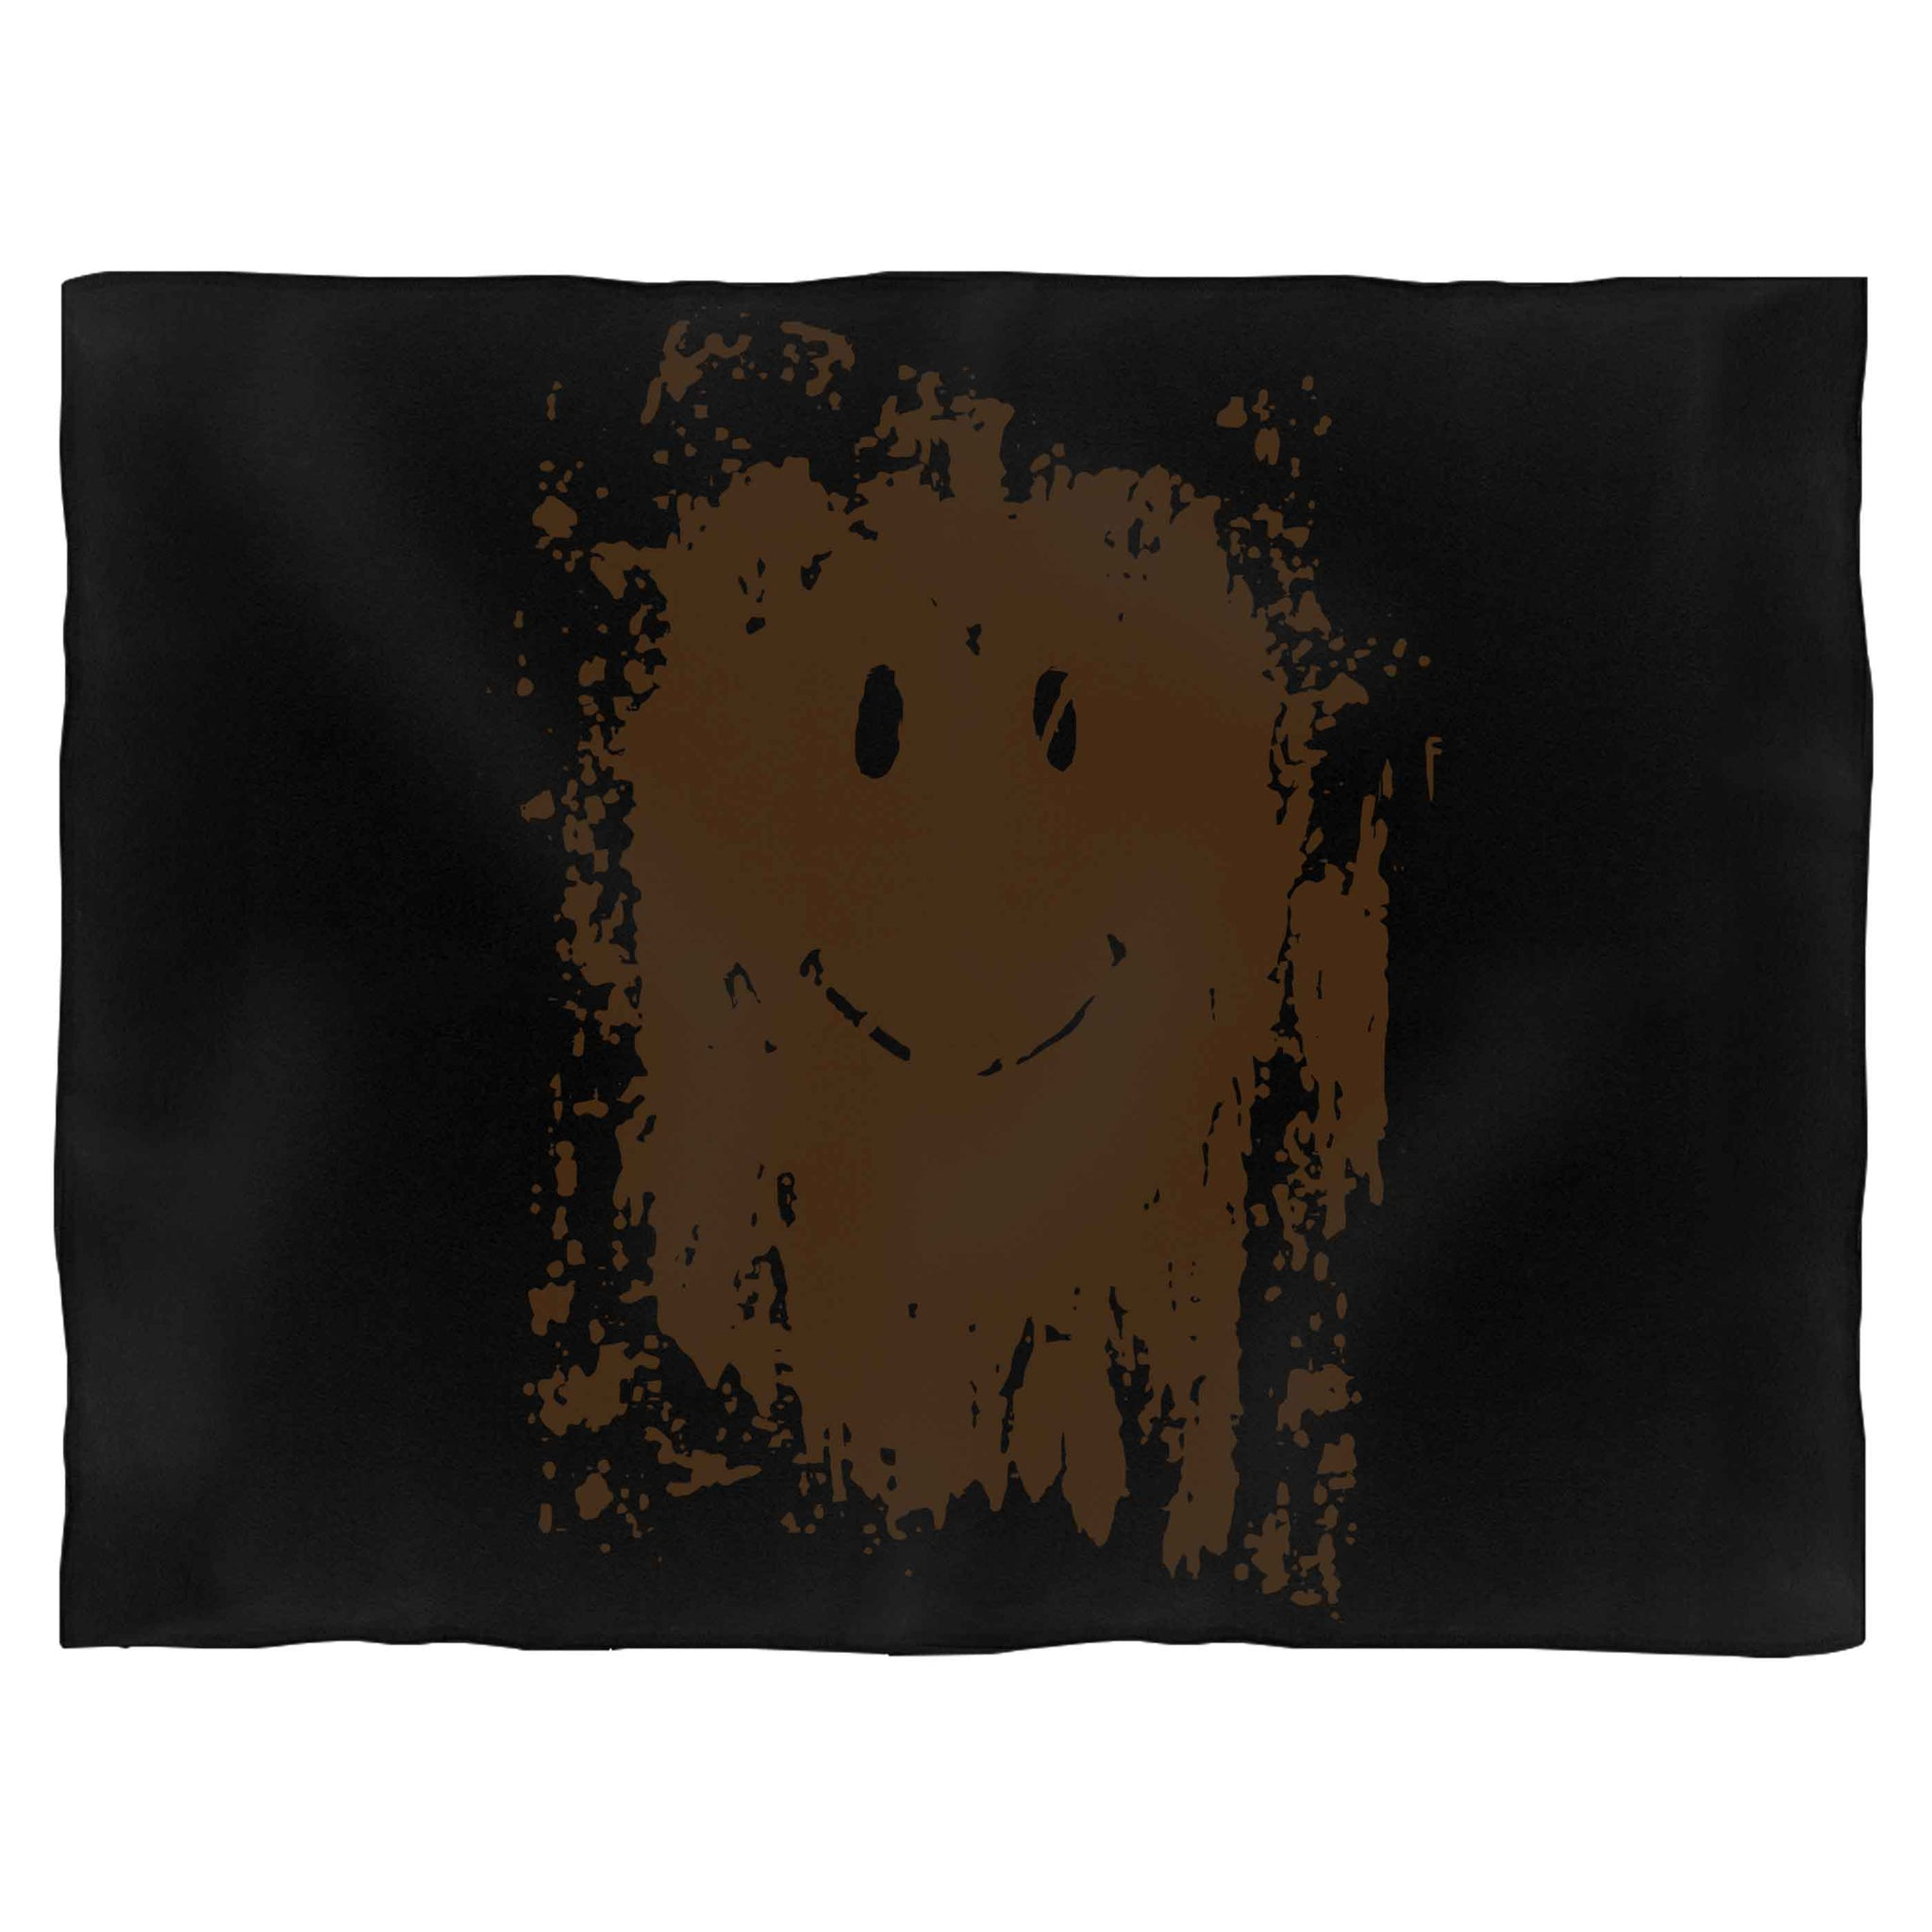 Muddy Smiley Face Forrest Gump Movie Blanket